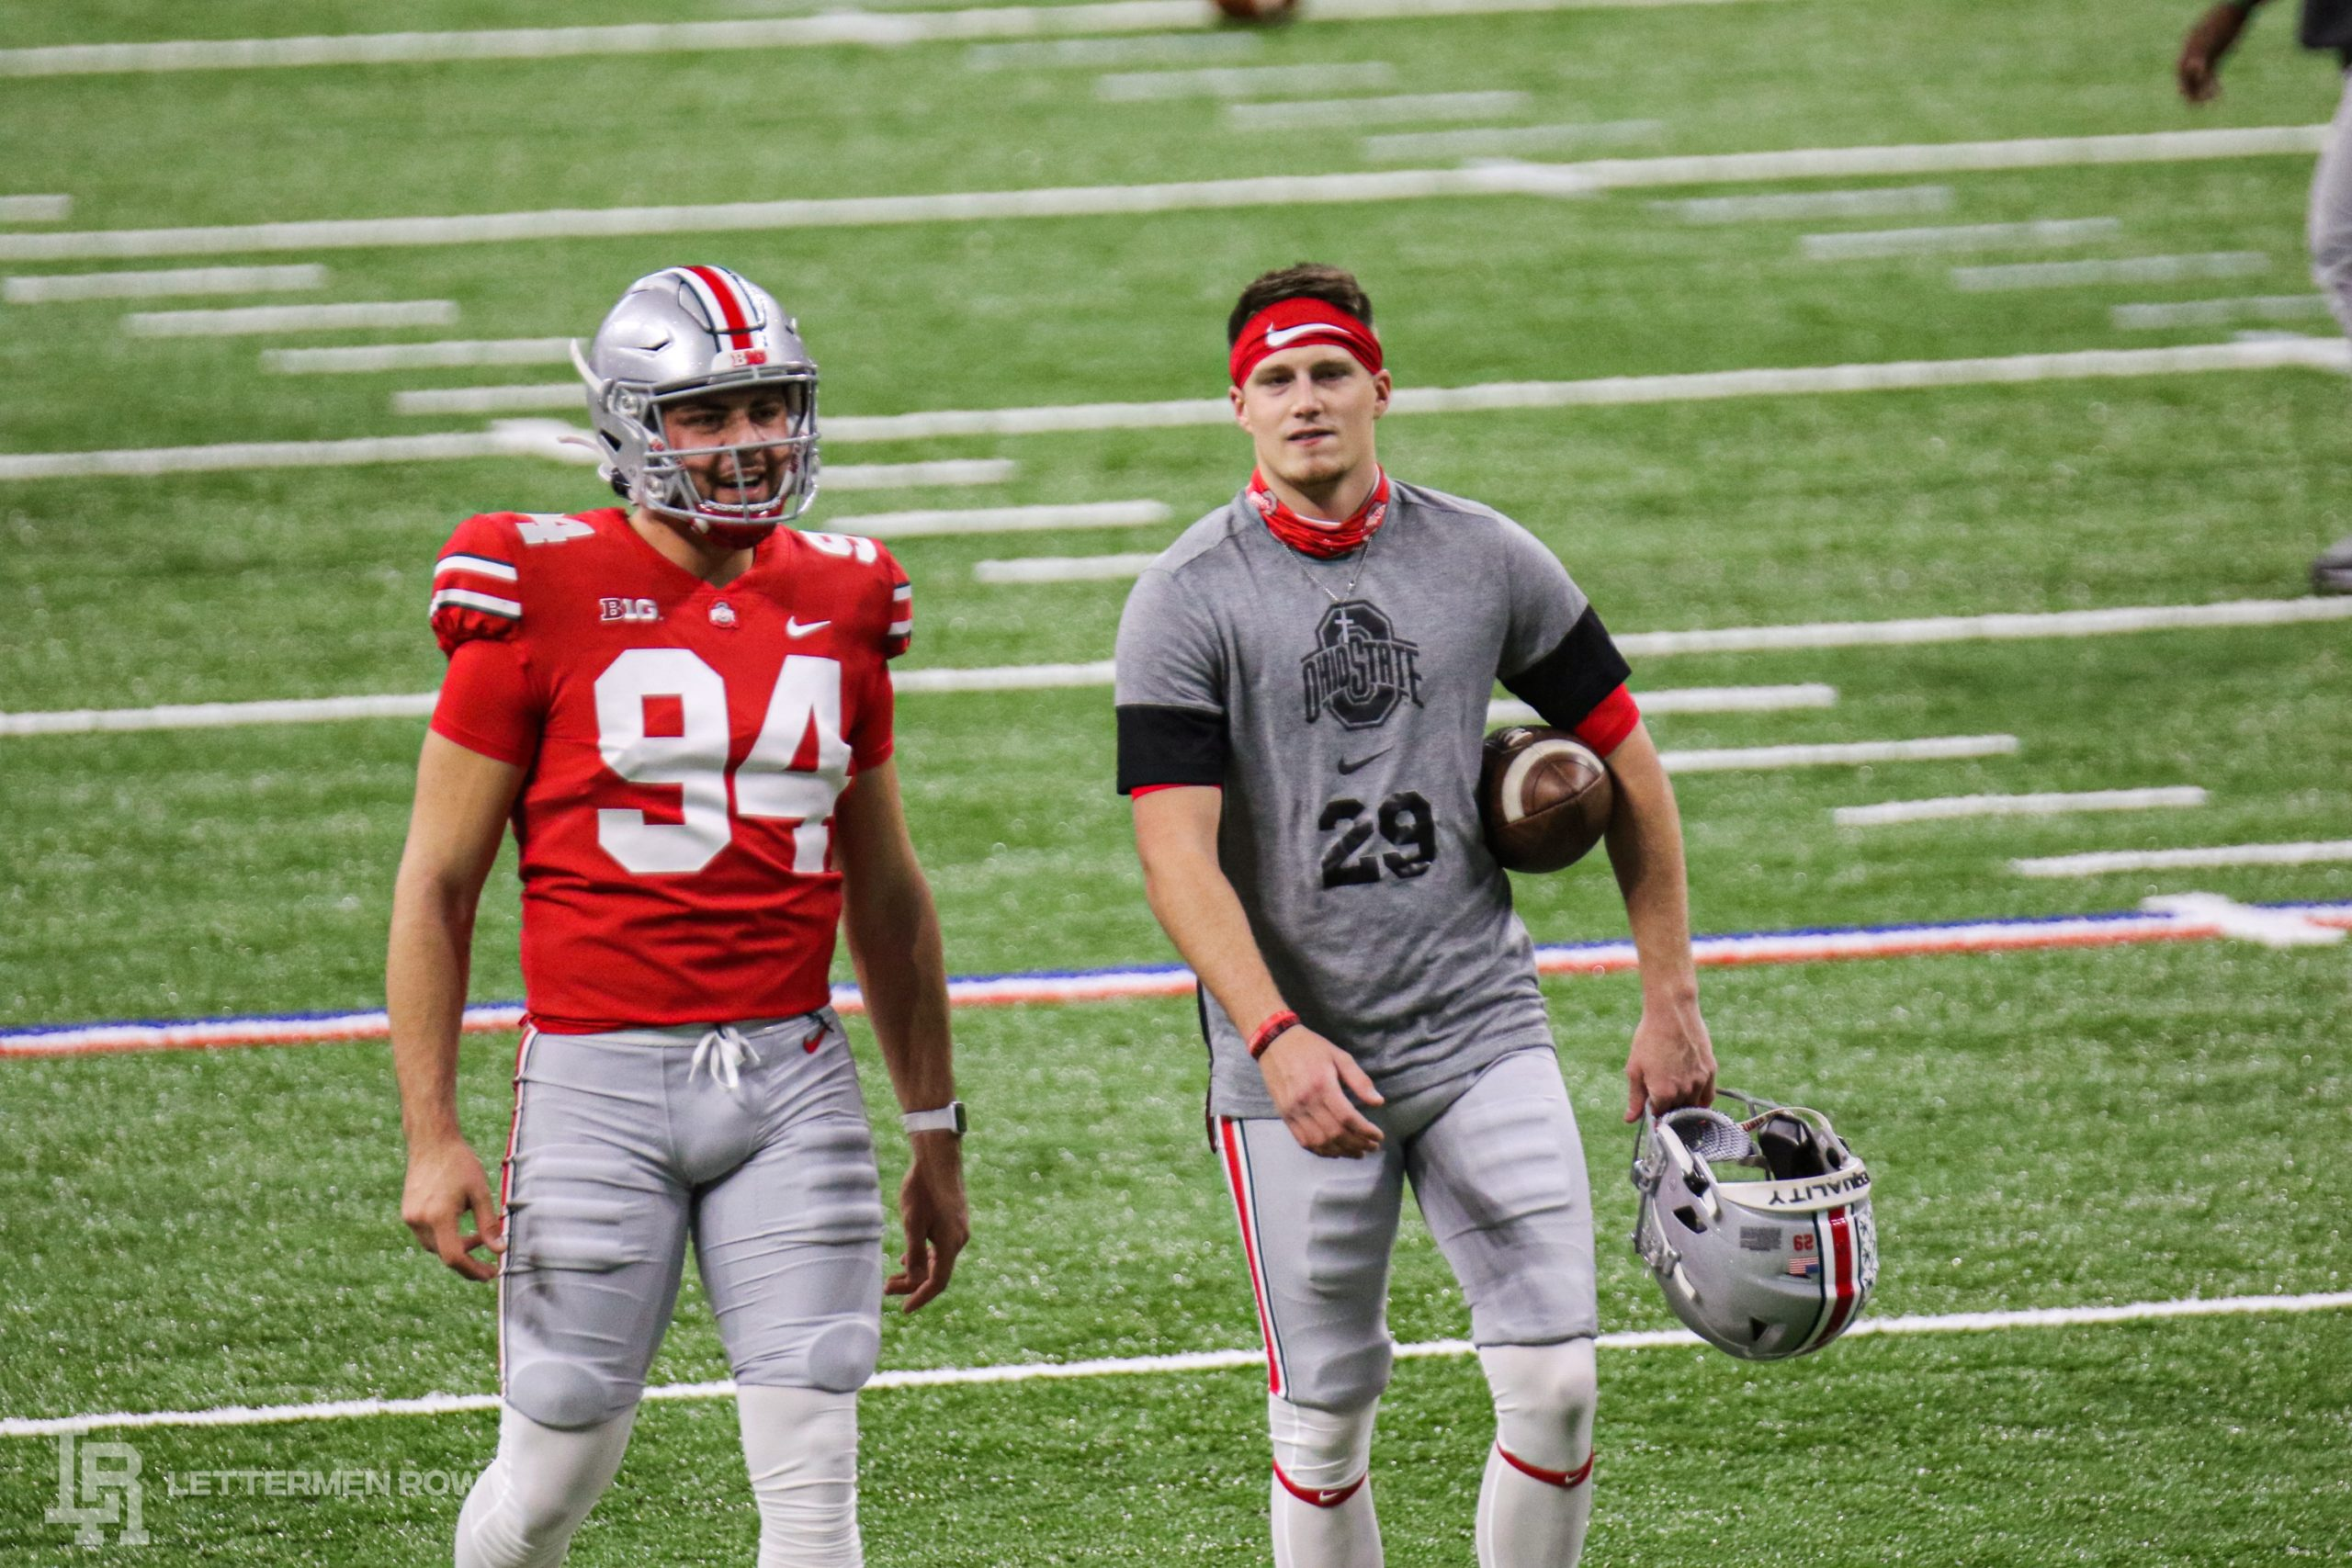 Zach Hoover-Ohio State-Ohio State football-Buckeyes